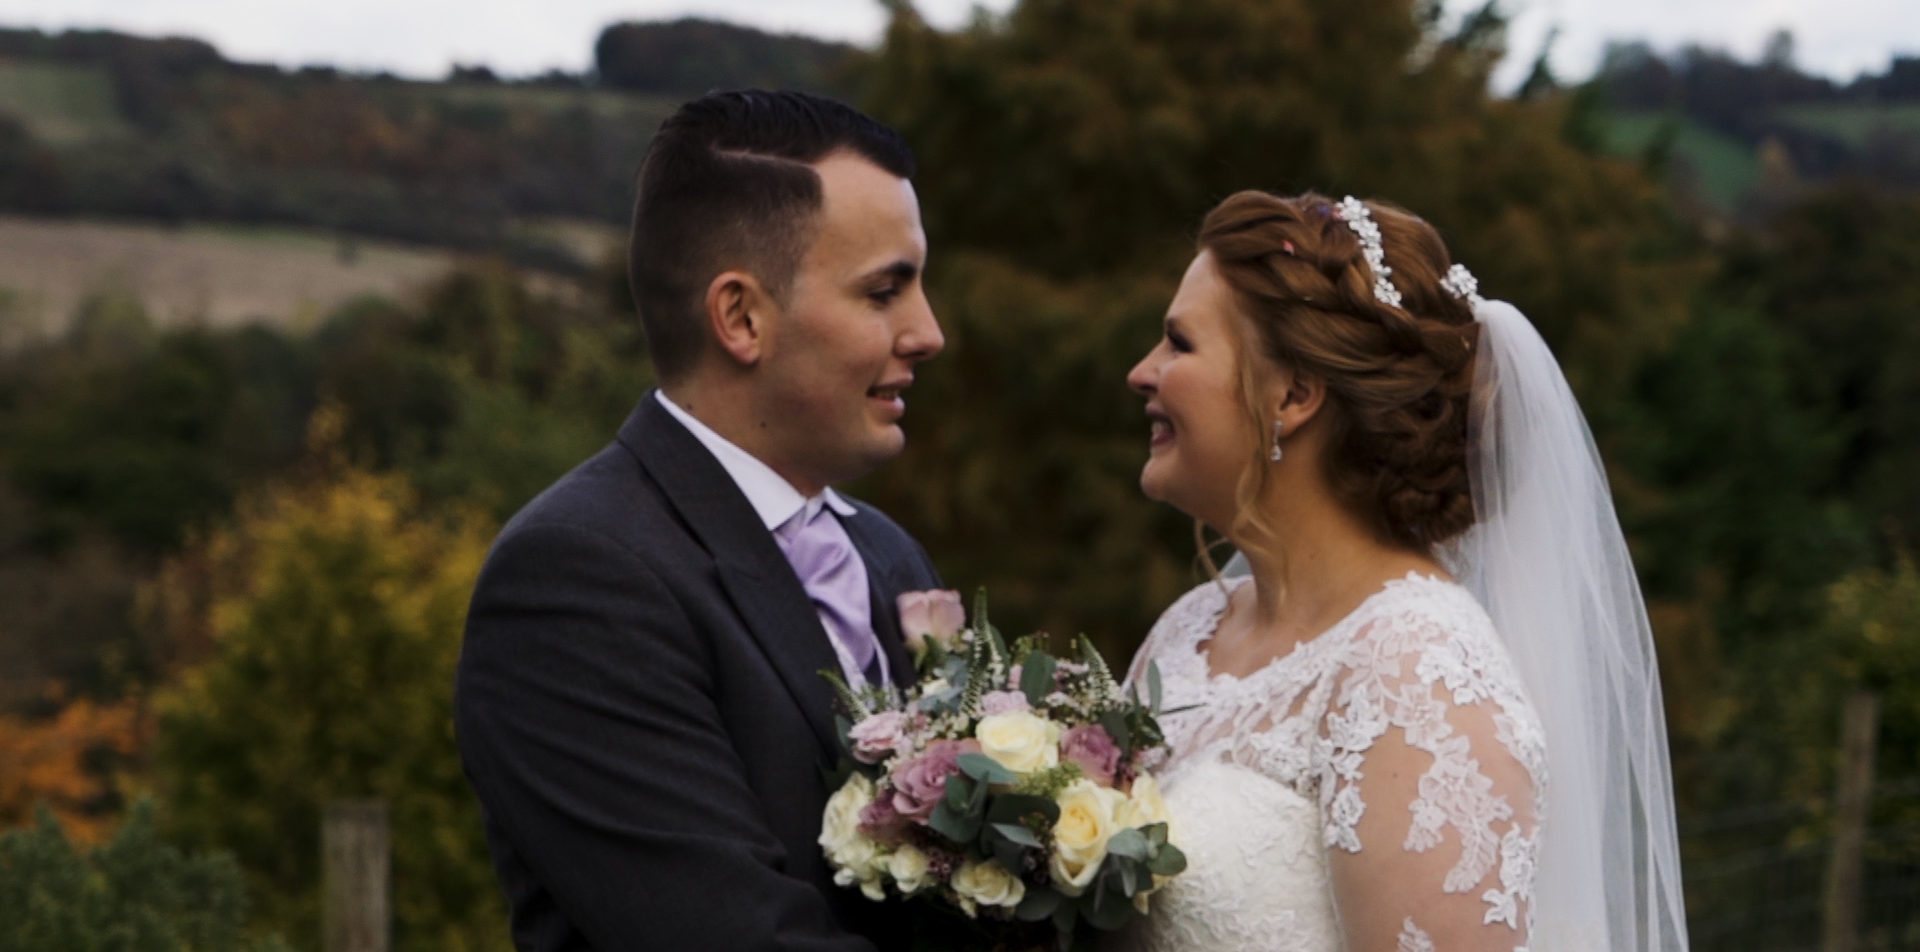 Wedding and event videographers in Gloucestershire and the cotswolds